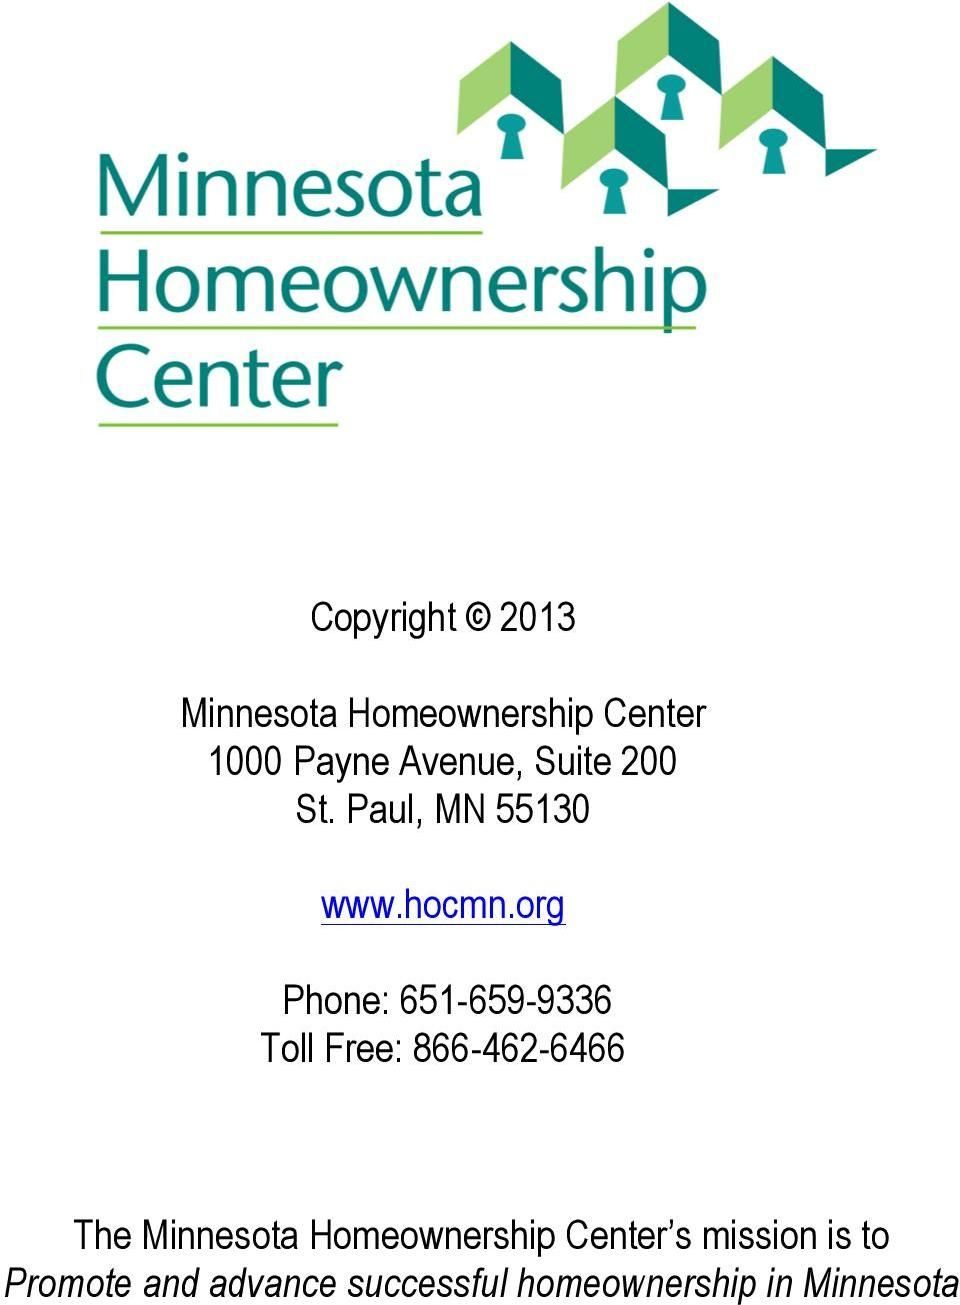 org Phone: 651-659-9336 Toll Free: 866-462-6466 The Minnesota